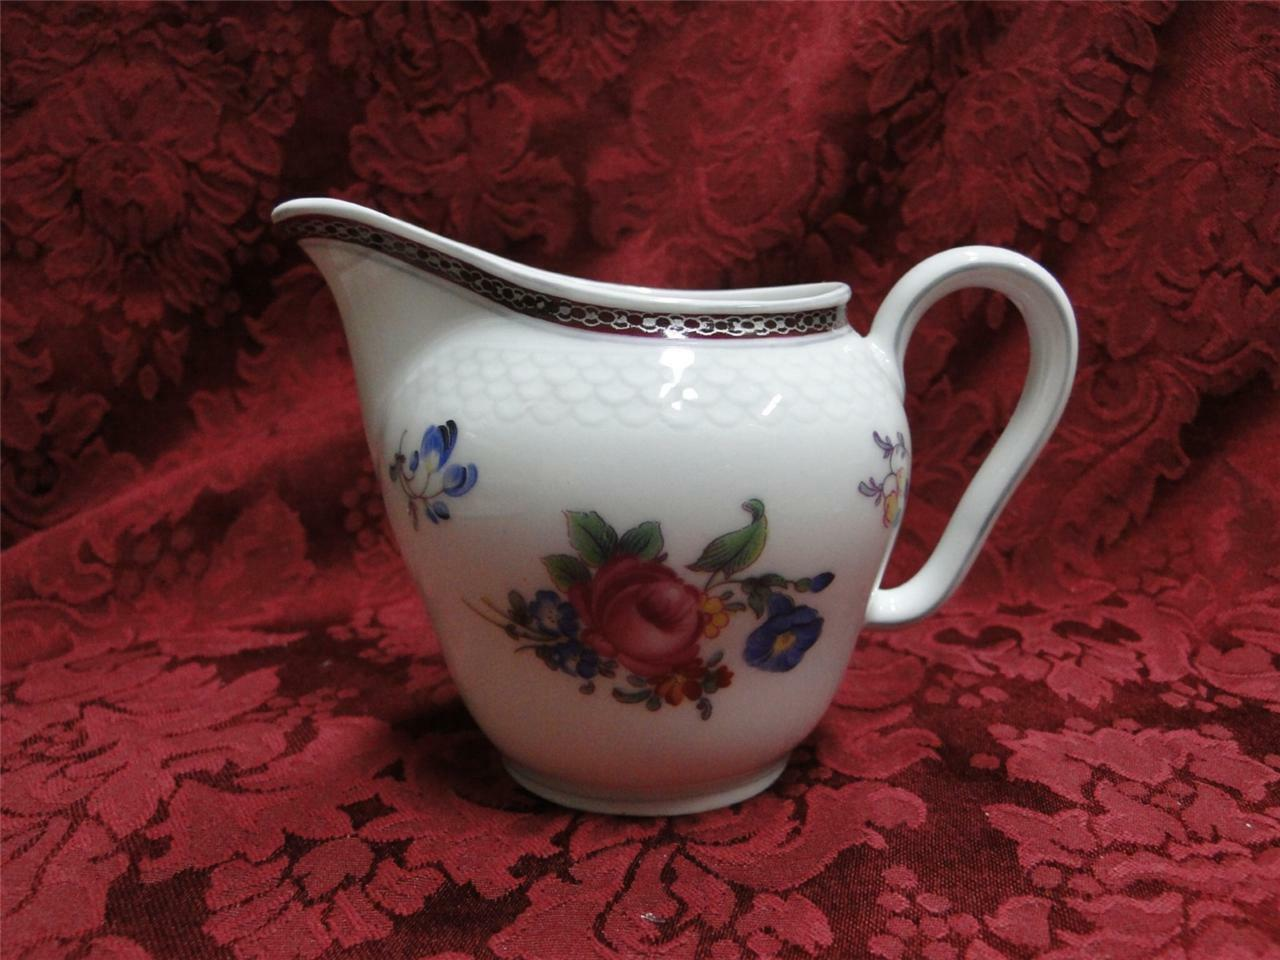 Thomas China 7144, Burgundy & Platinum Band: Creamer / Cream Pitcher